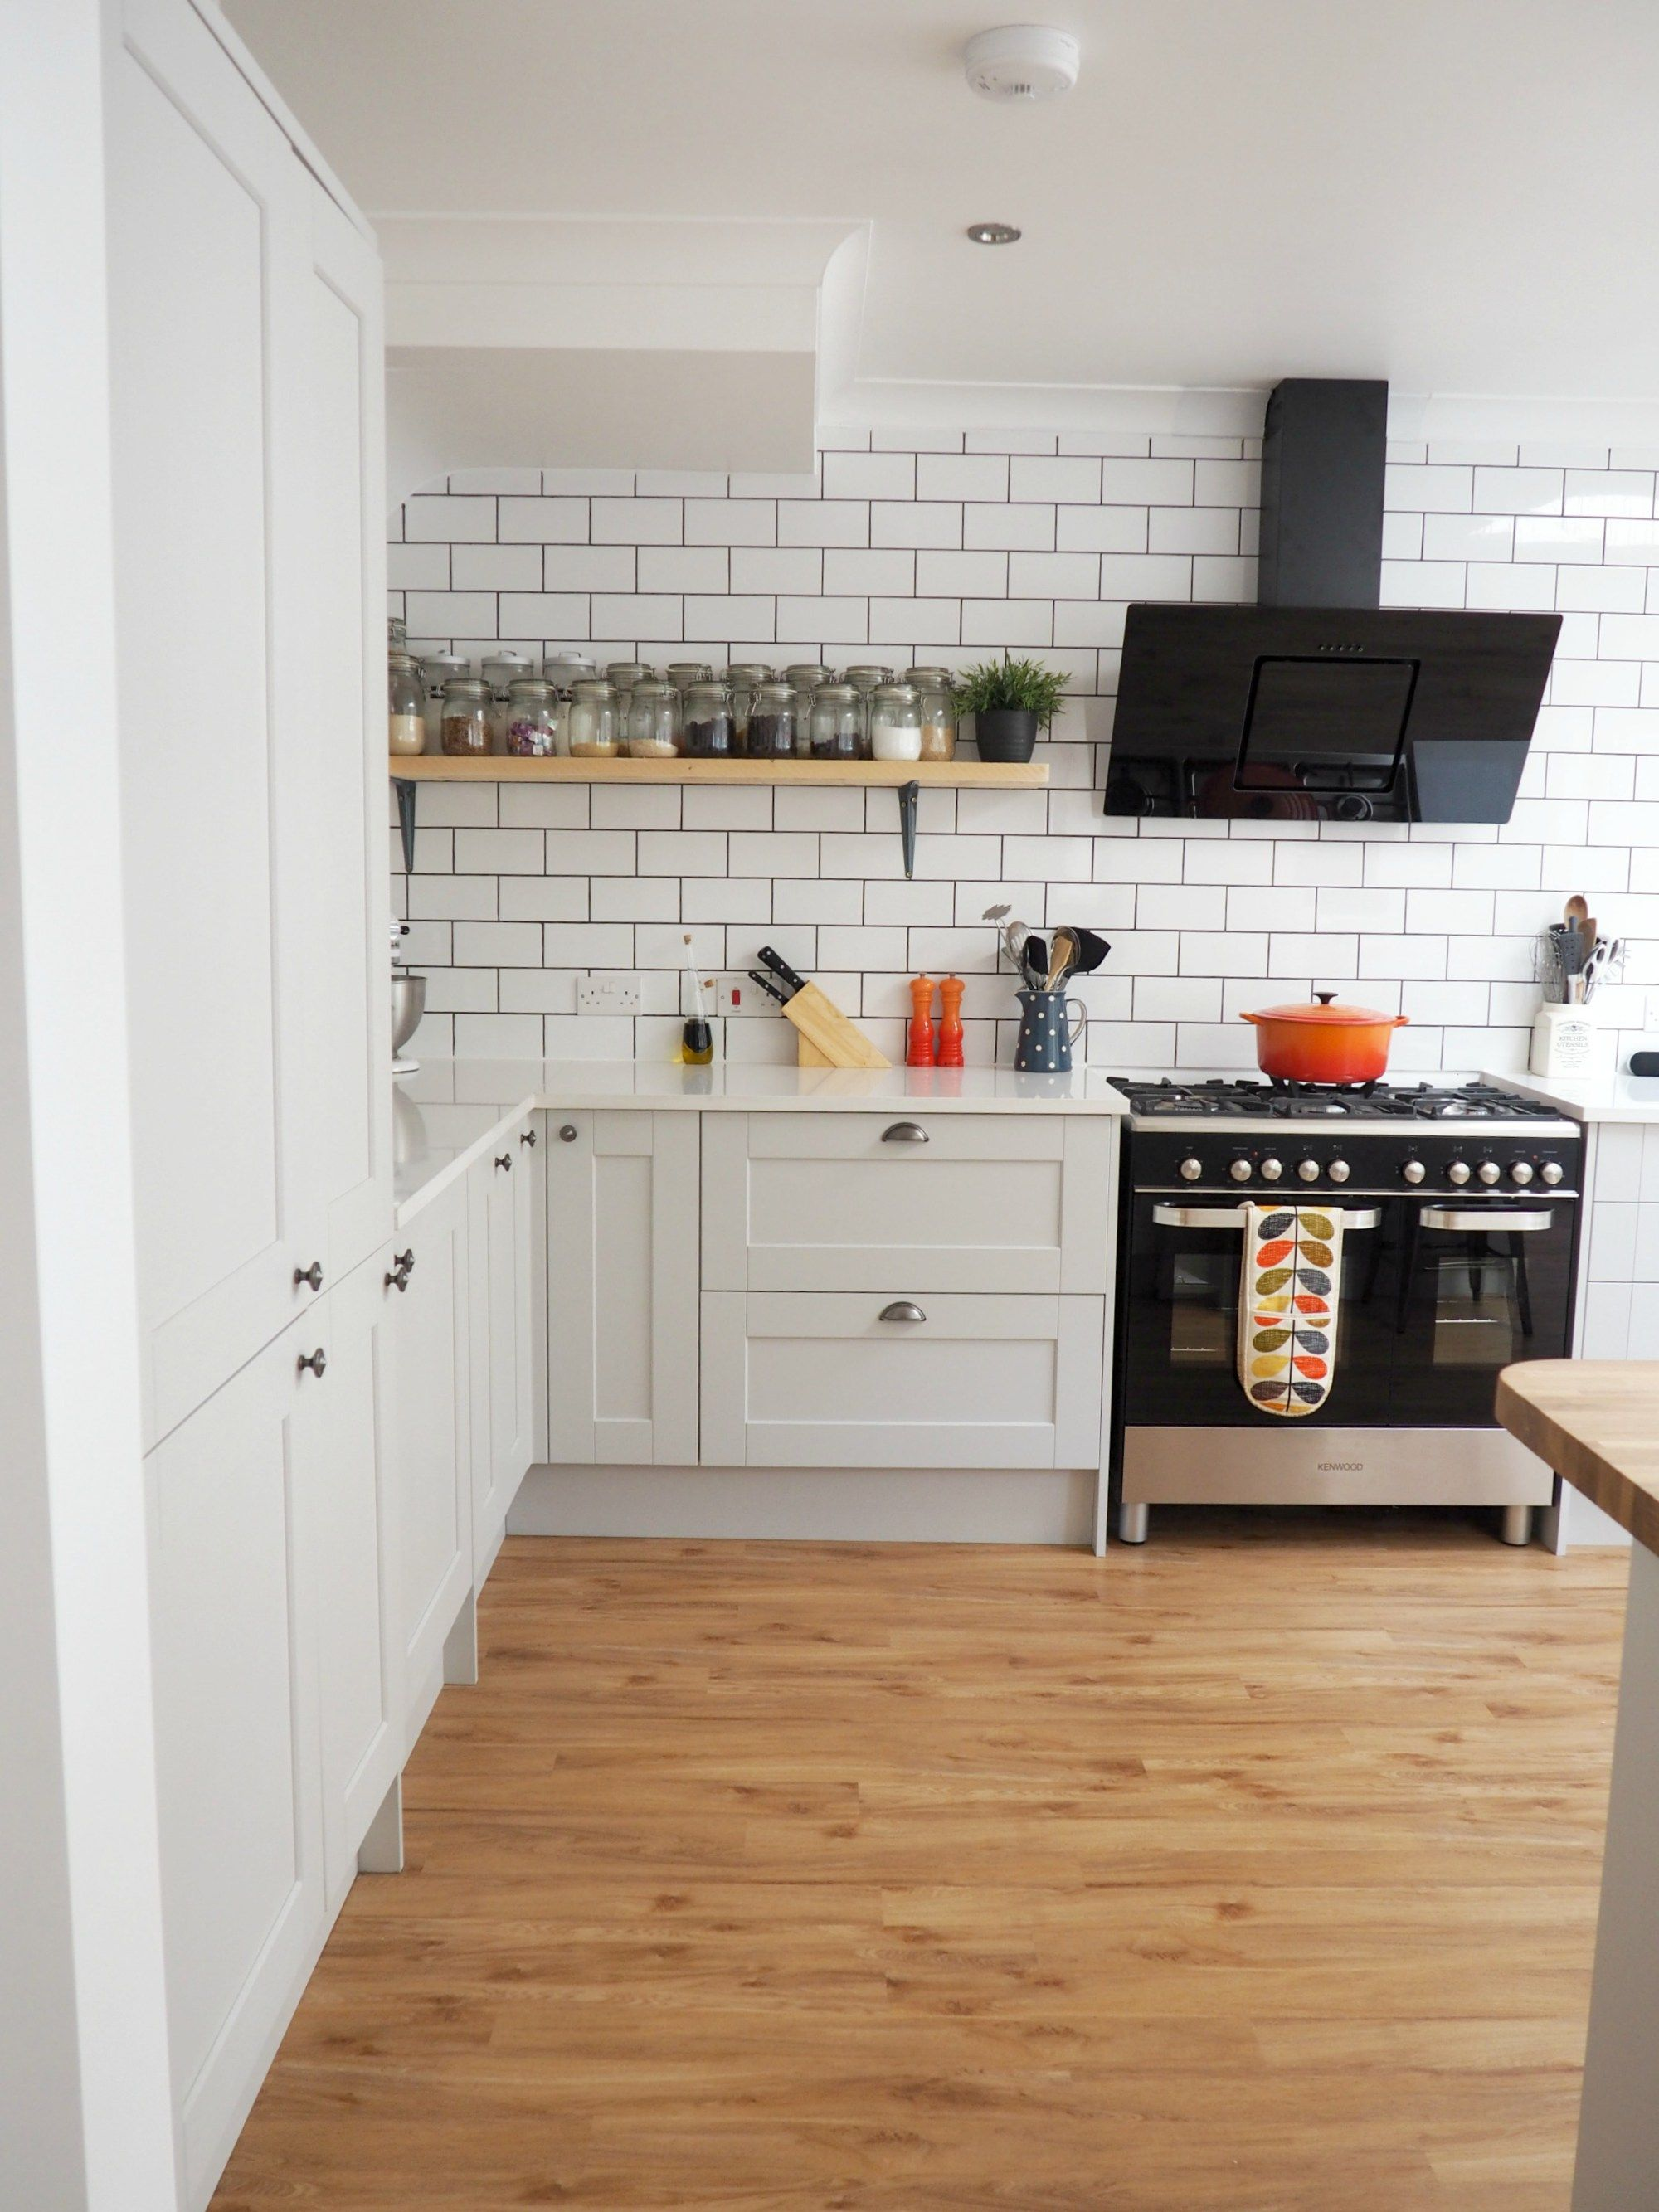 Shaker interior door styles a glimpse of our fab new kitchen renovation easily now my favourite